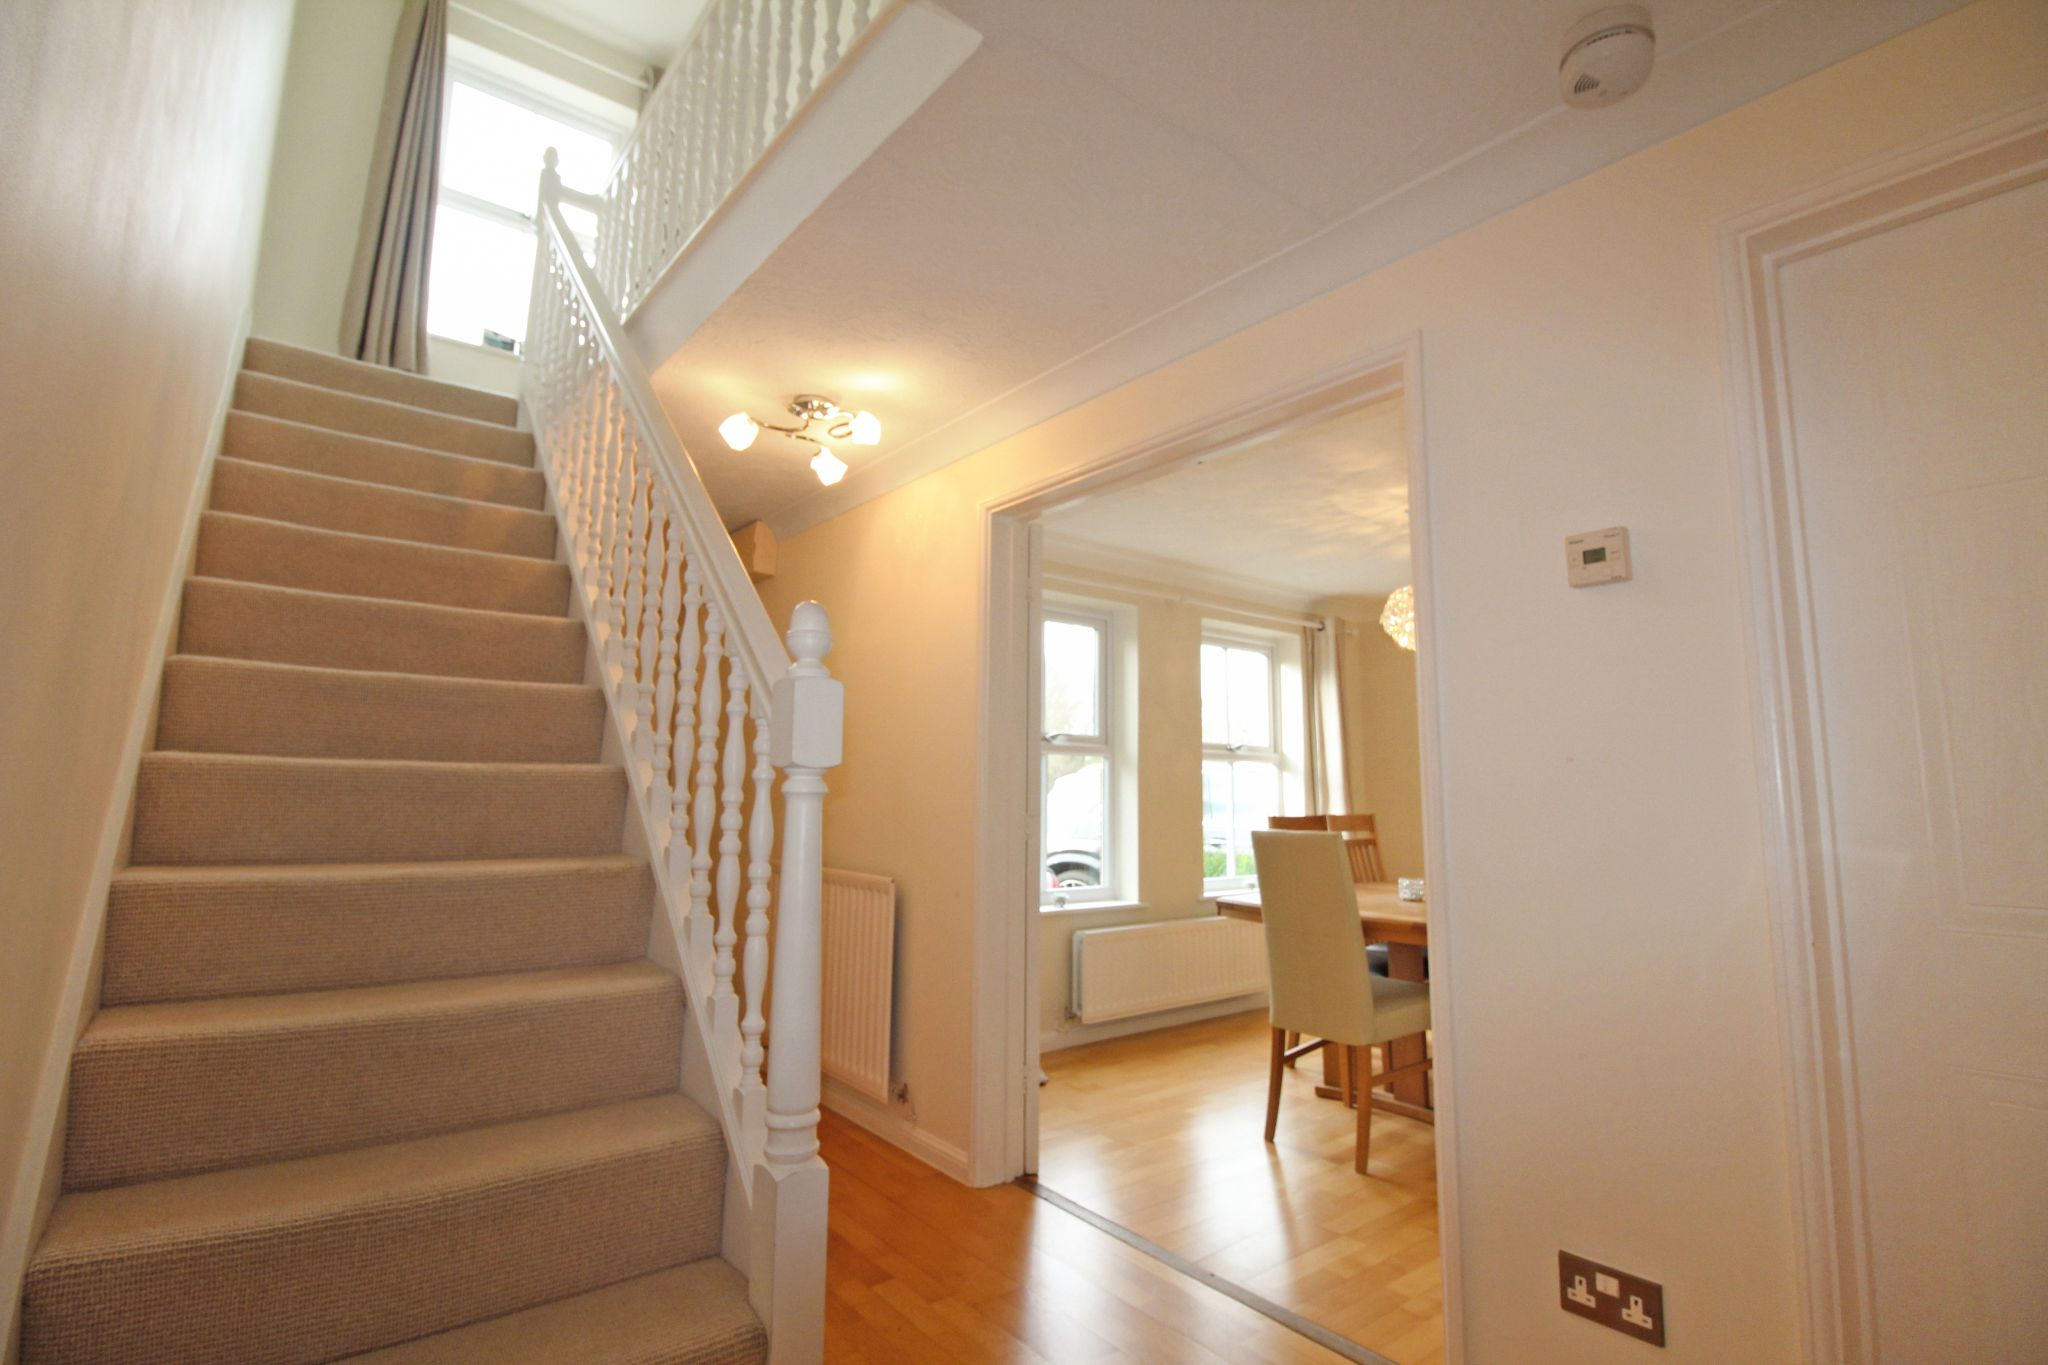 5 bedroom detached house SSTC in Solihull - Photograph 2.